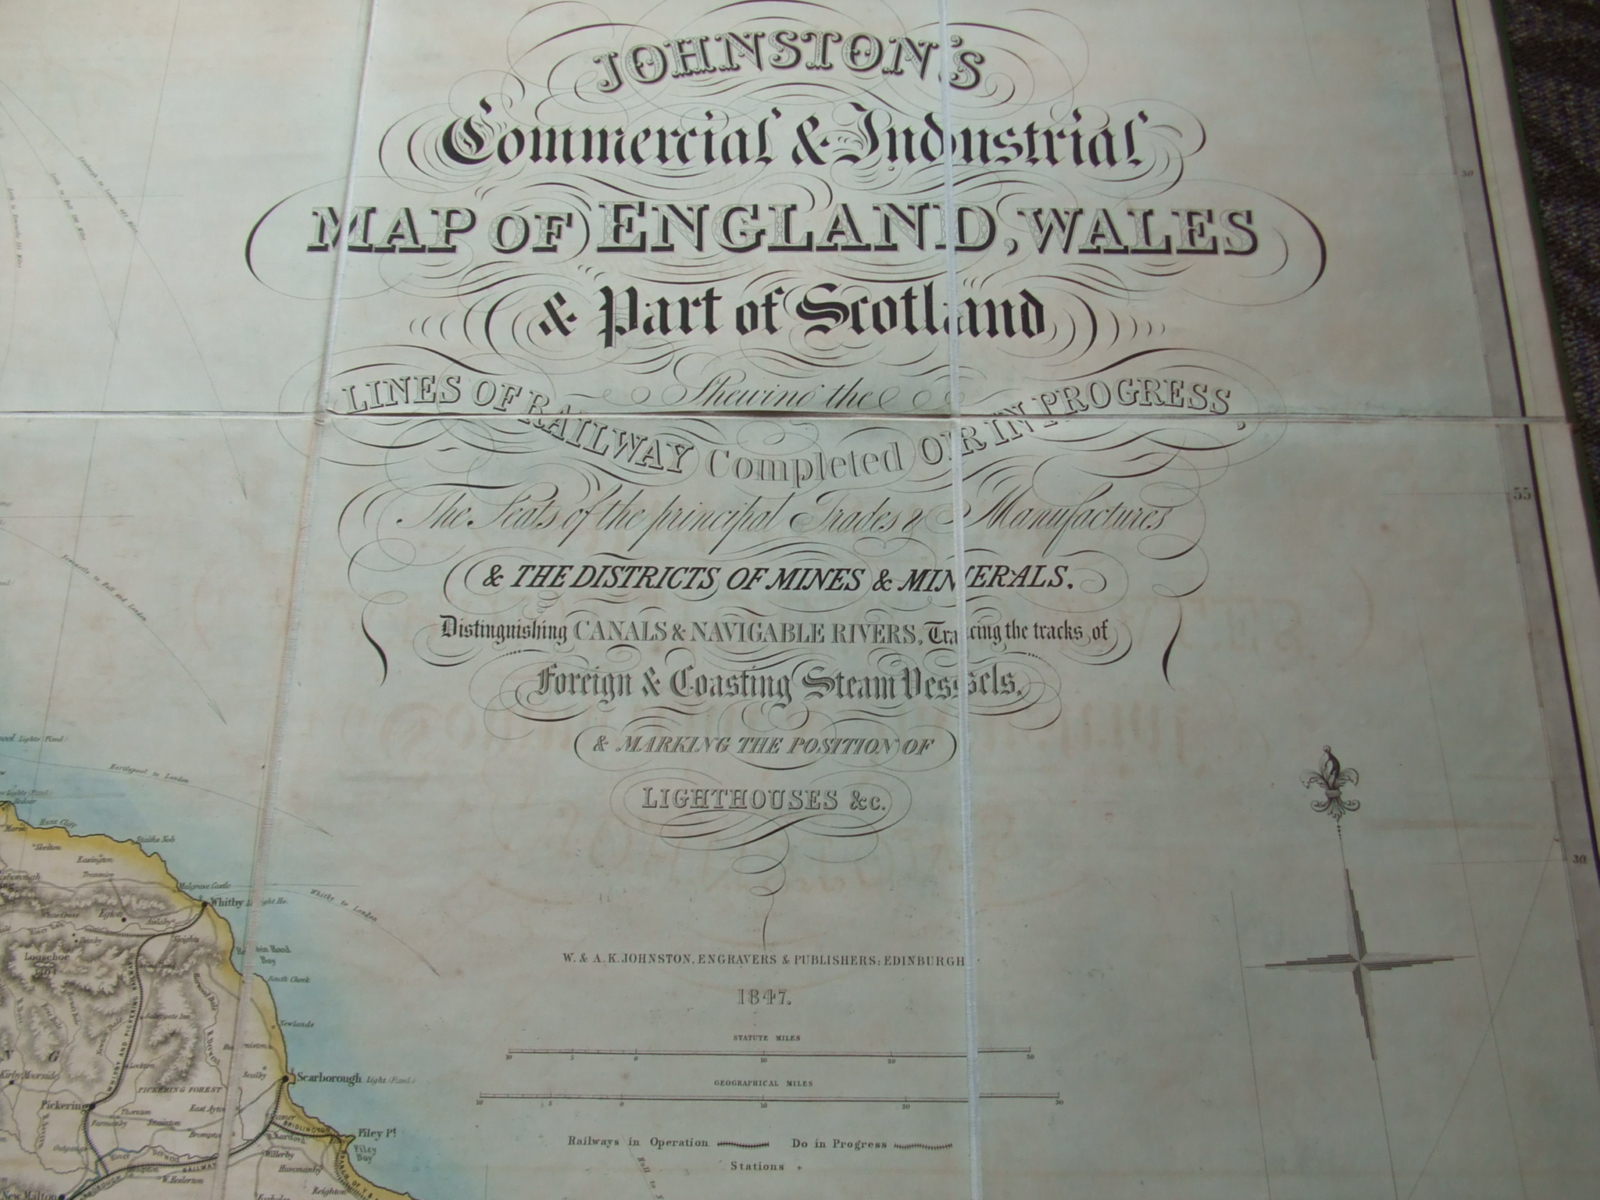 Image for Johnston's Commercial & Industrial Map of England and Wales & Part of Scotland Showing the Lines of Railway Complete or in Progress the Seats of the Principal Trades & Manufactures & the Districts of Mines & Minerals, Distinguishing Canals & Navigable .